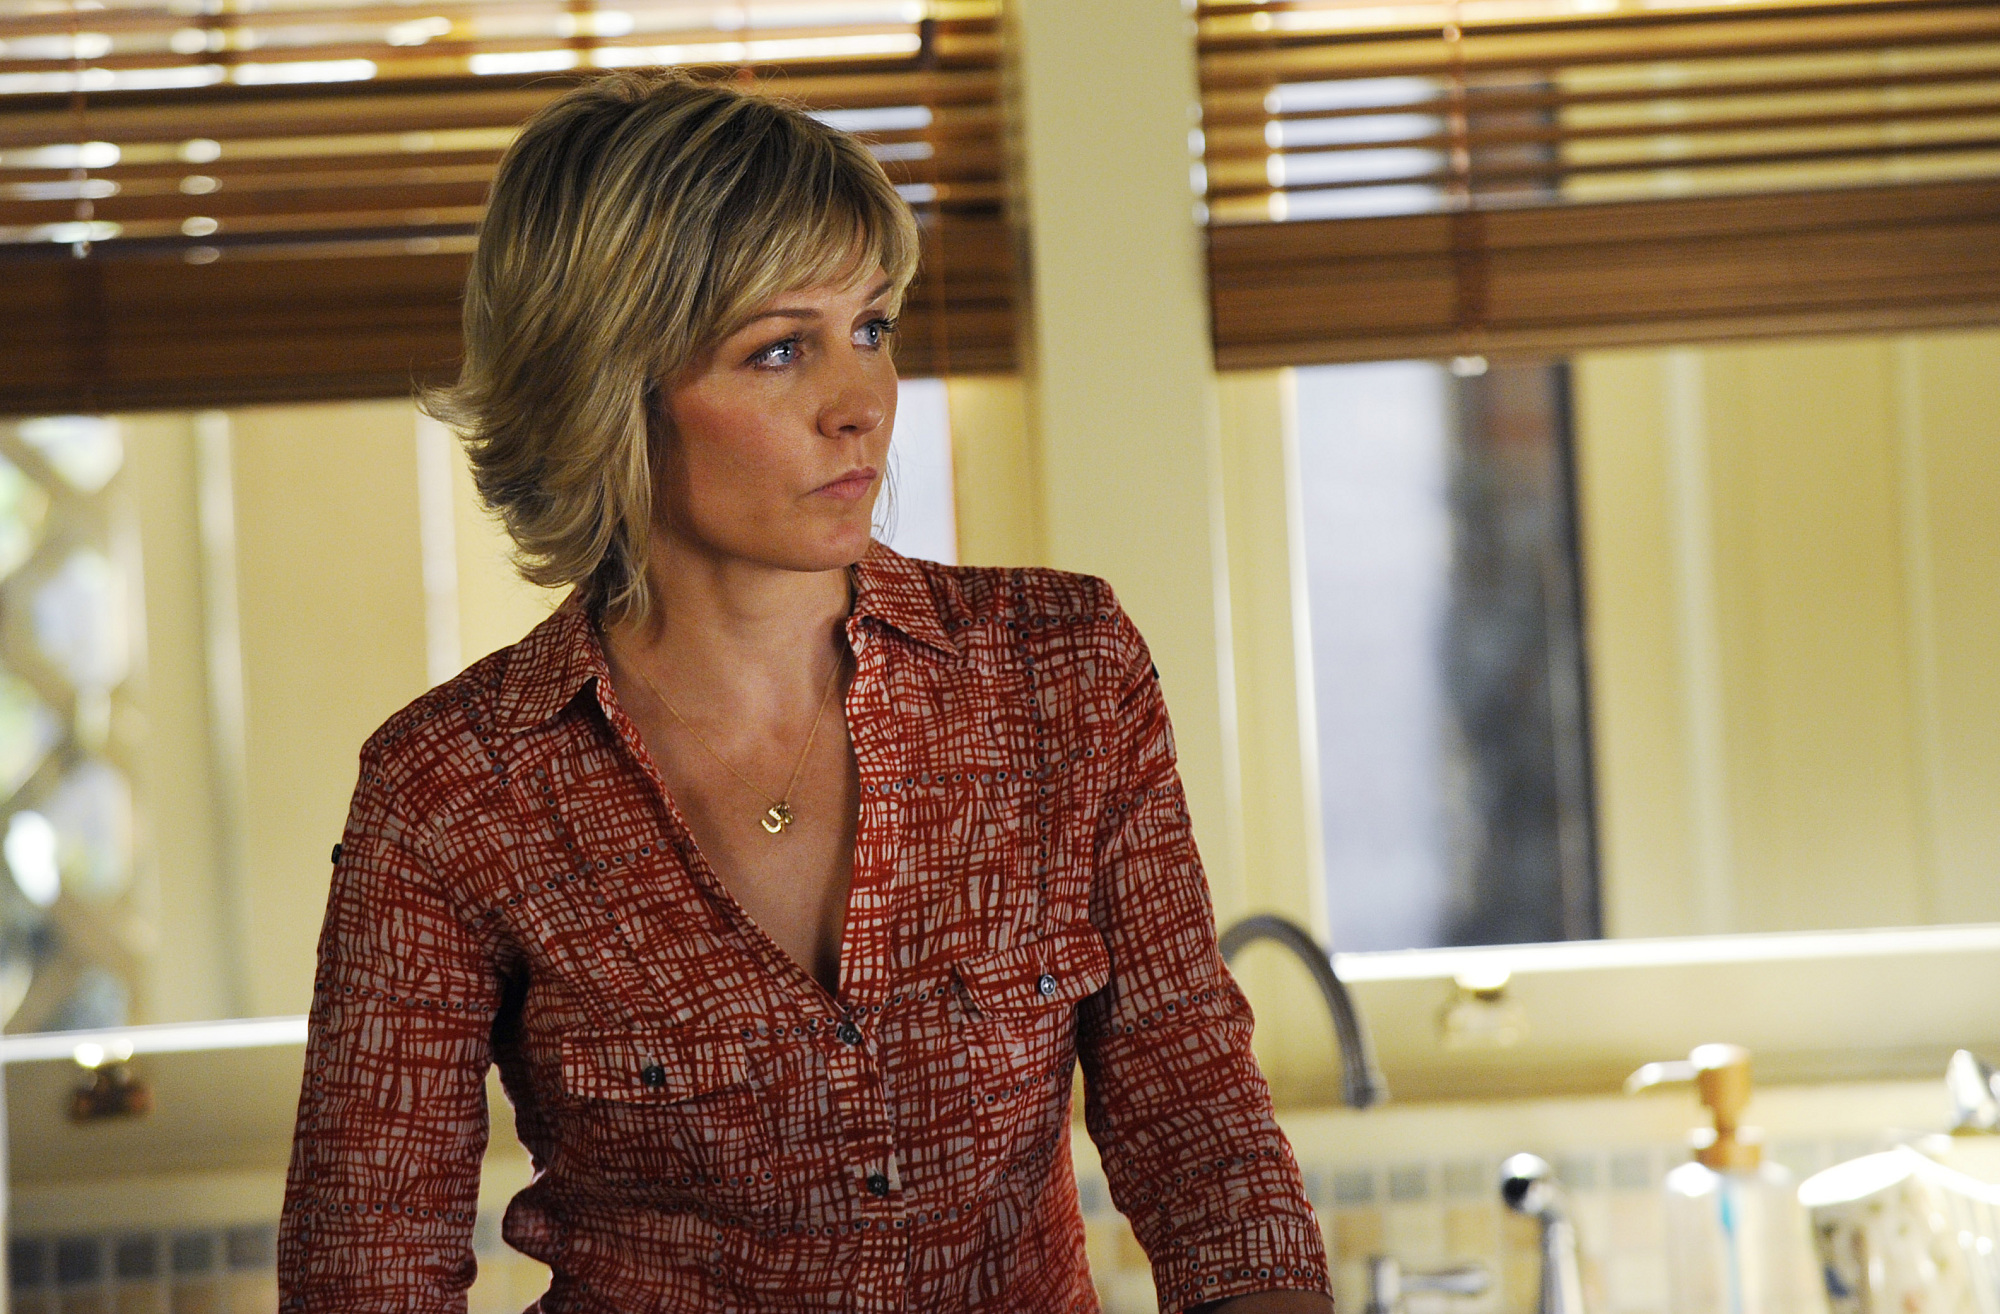 25. Amy Carlson's husband is Syd Butler, bassist in the 8G Band on